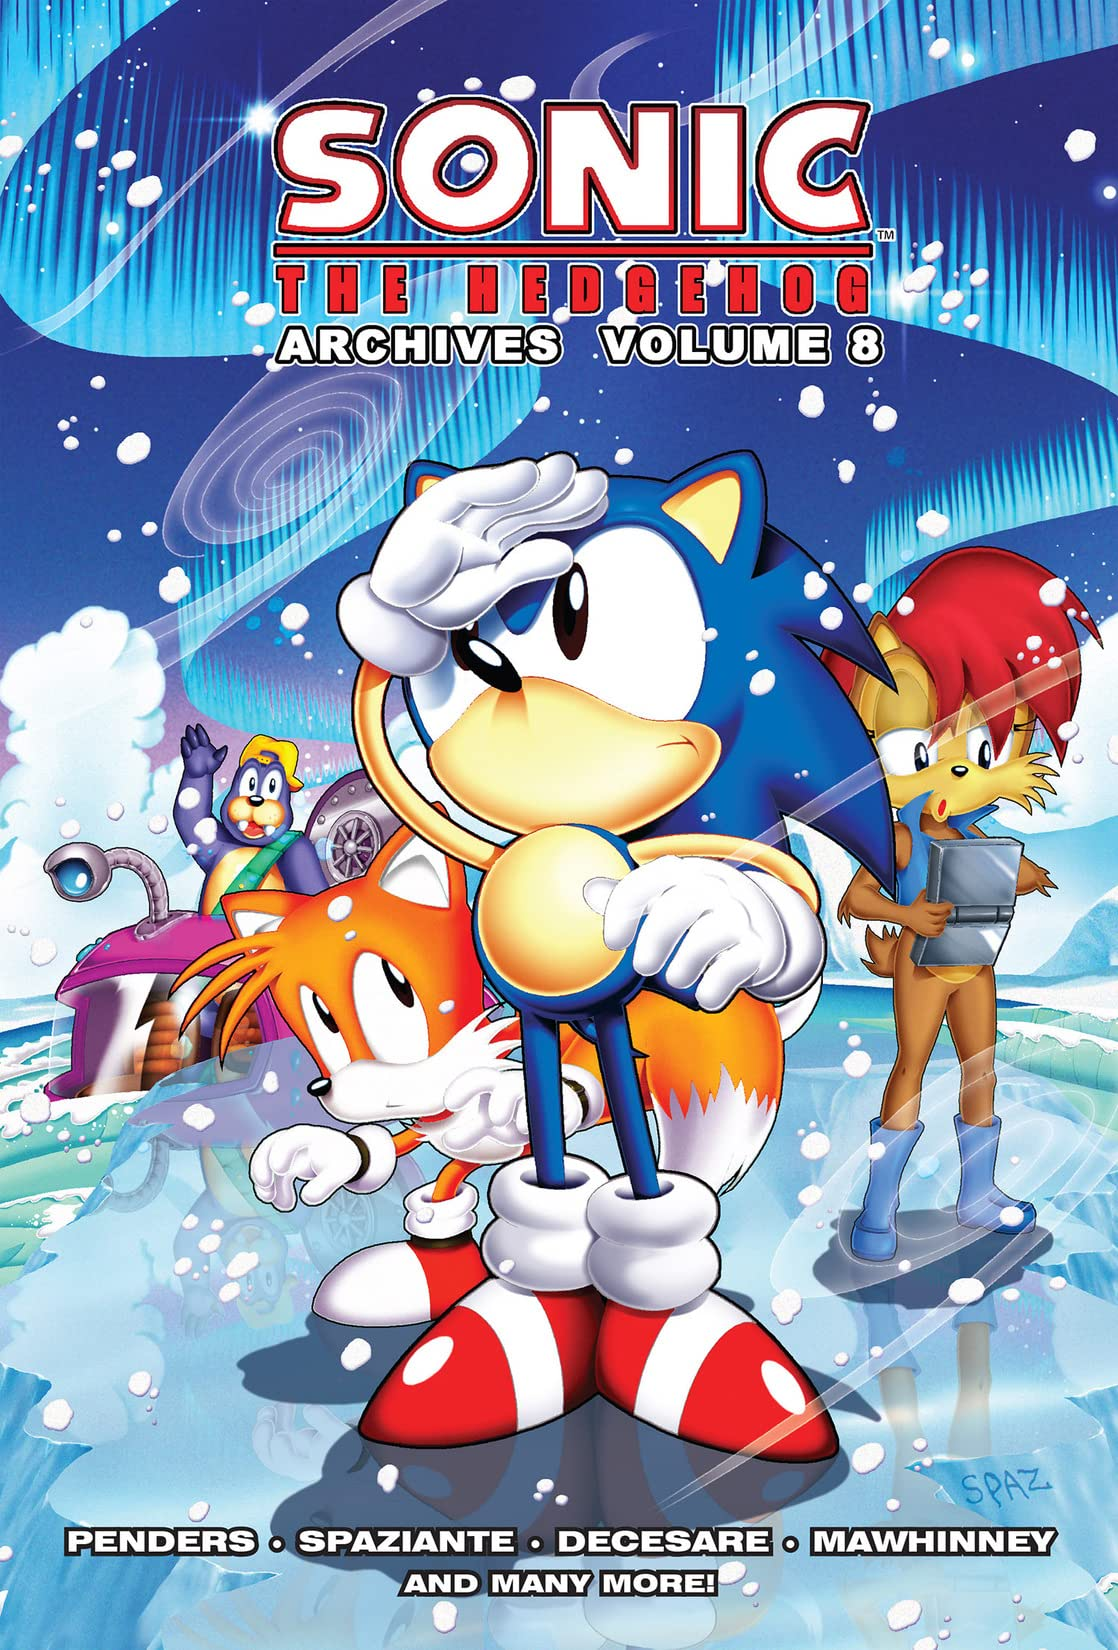 Sonic the Hedgehog Archives Vol. 8